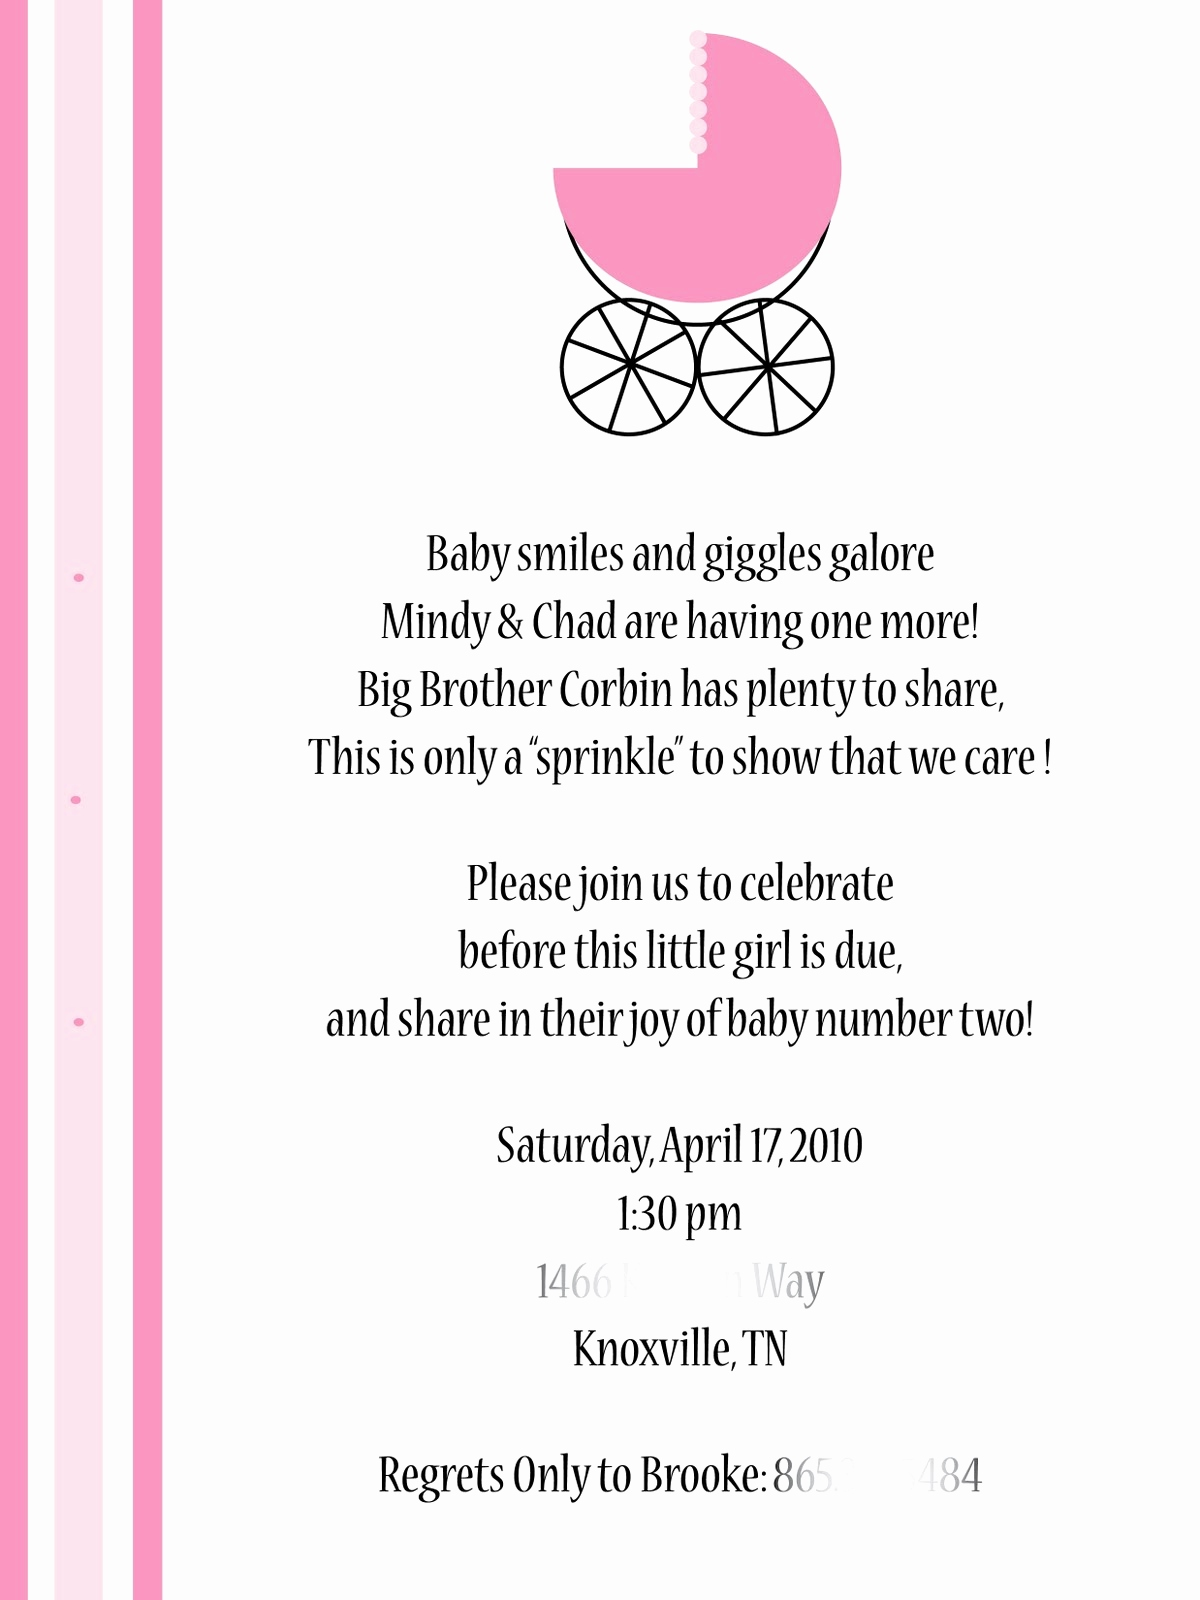 Full Size of Baby Shower:36+ Retro Baby Shower Thank You Wording Image Concepts Baby Shower Thank You Wording As Well As Coed Baby Shower With Baby Shower Favors To Make Plus Baby Shower Para Niño Together With Ideas Para Baby Shower